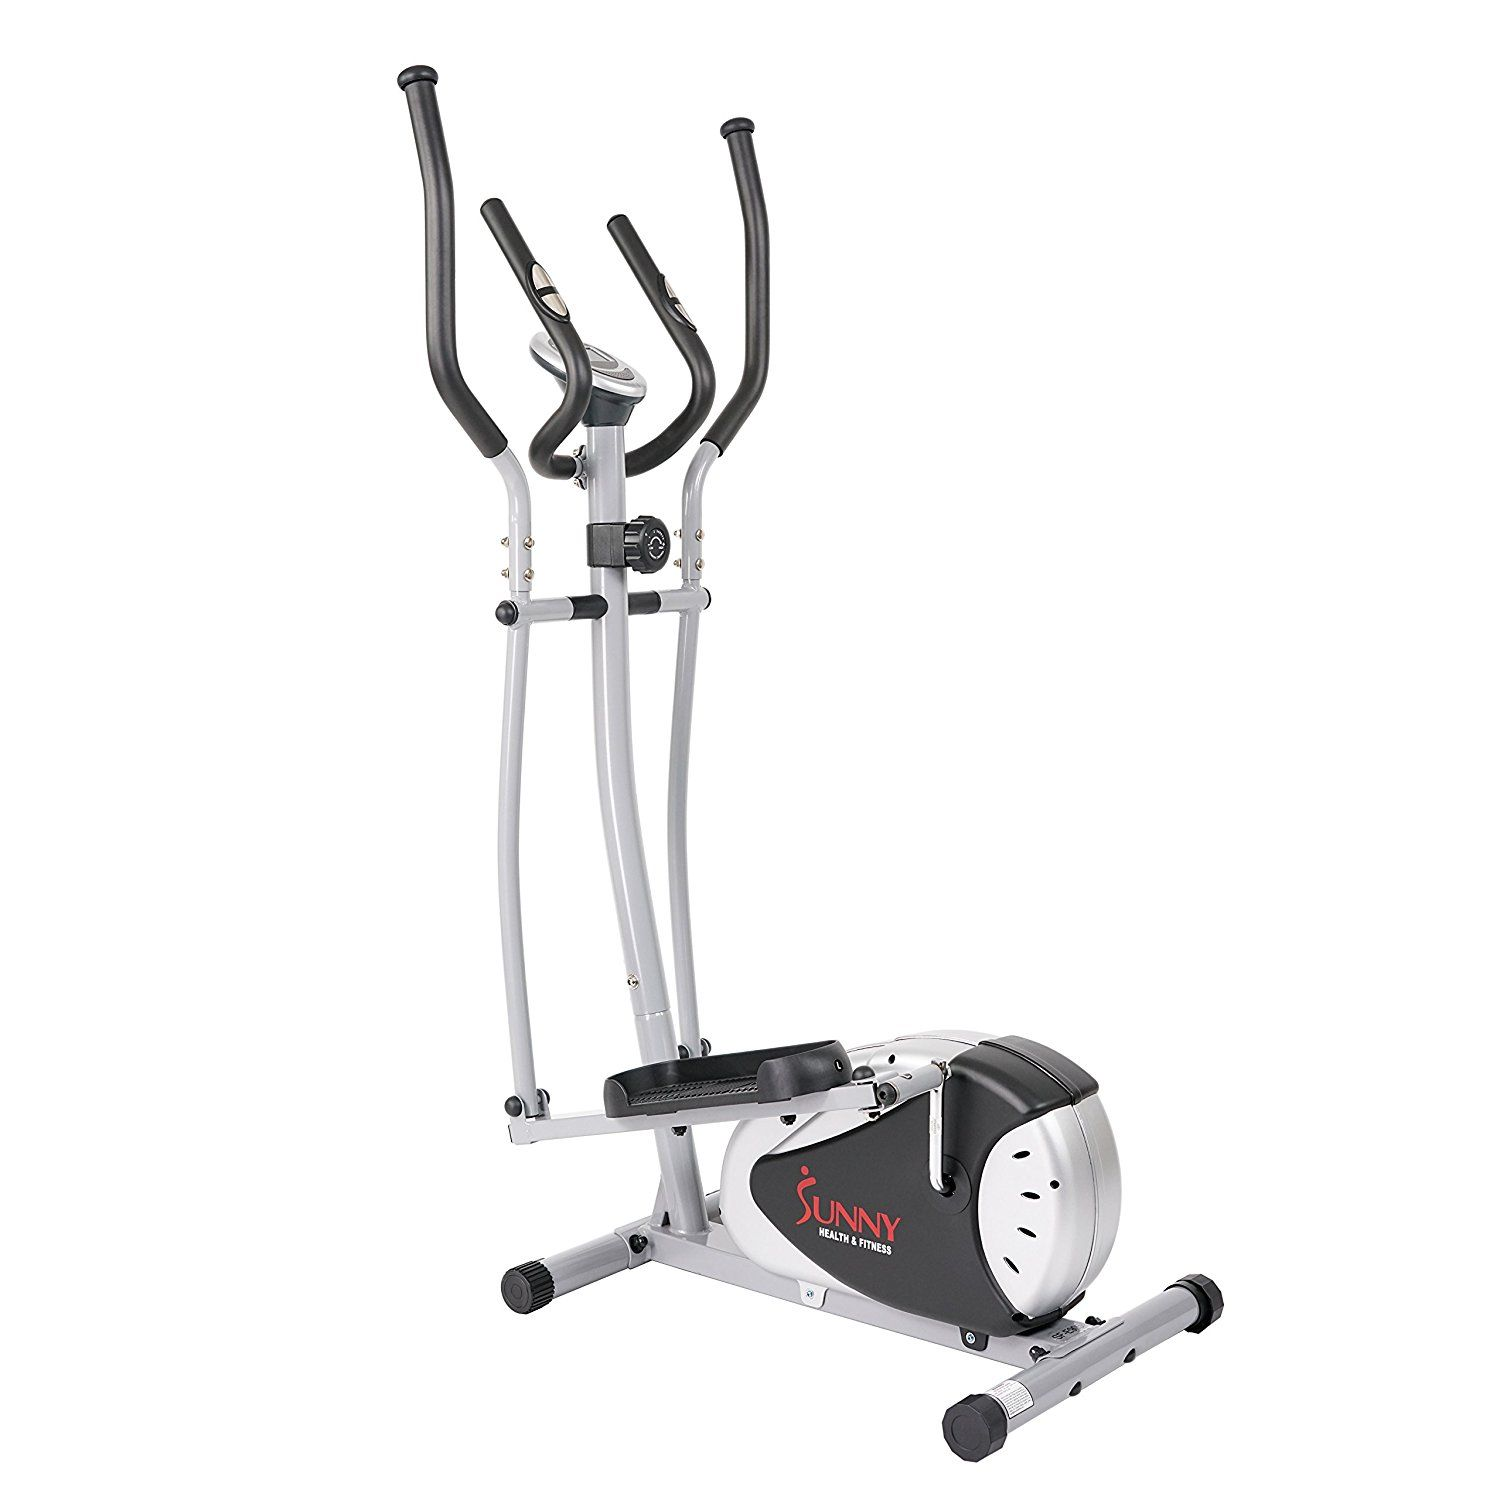 Check out the sunny health fitness elliptical trainer